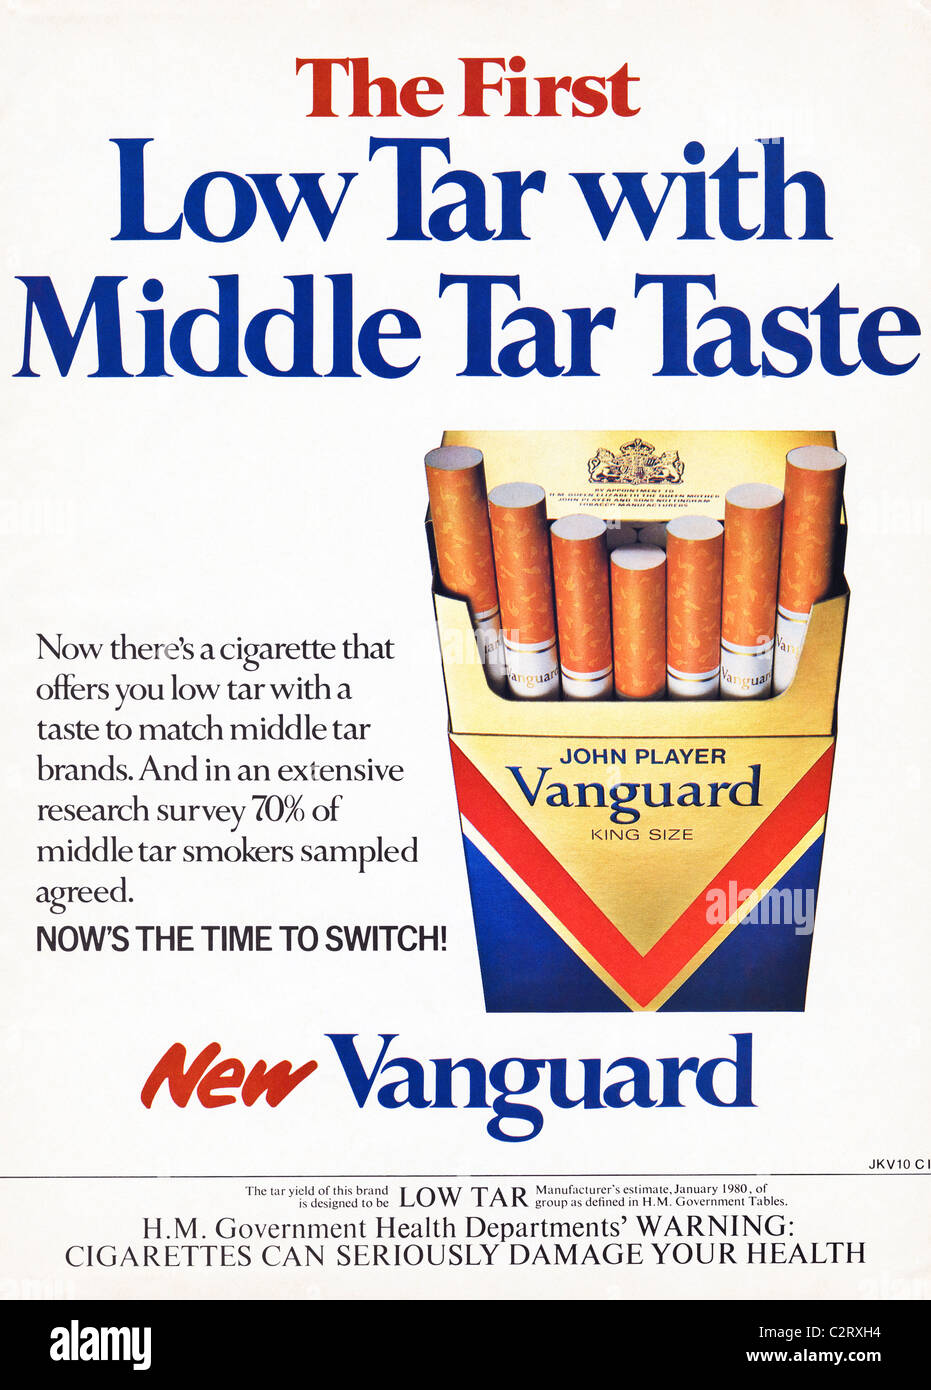 Fifty one cigarette flavors